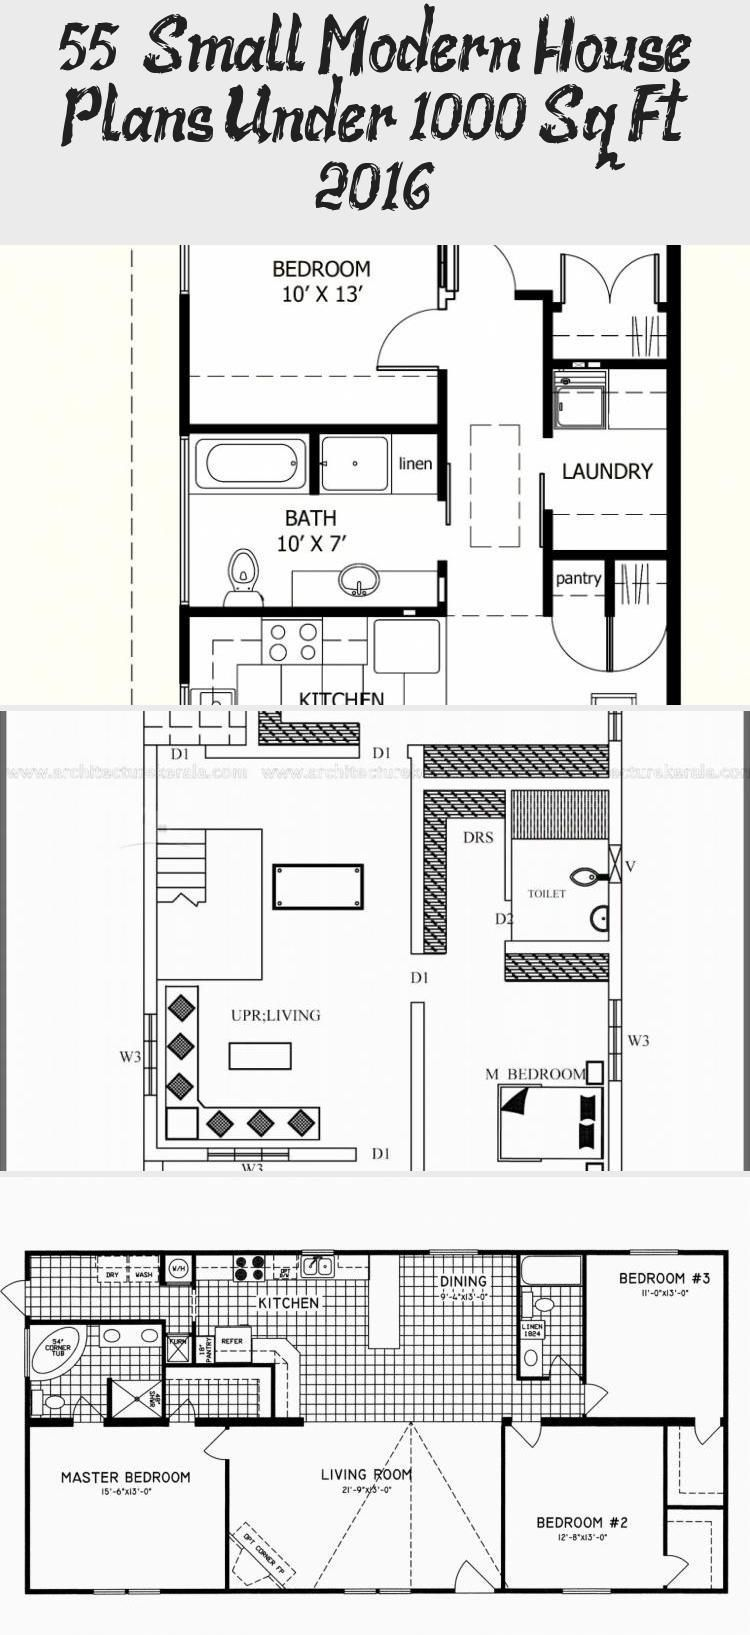 50 Small Modern House Plans Under 1000 Sq Ft 2019 Modernhousesketchpencil Mode 50 Small Mod Small Modern House Plans Small Modern Home Modern House Plans